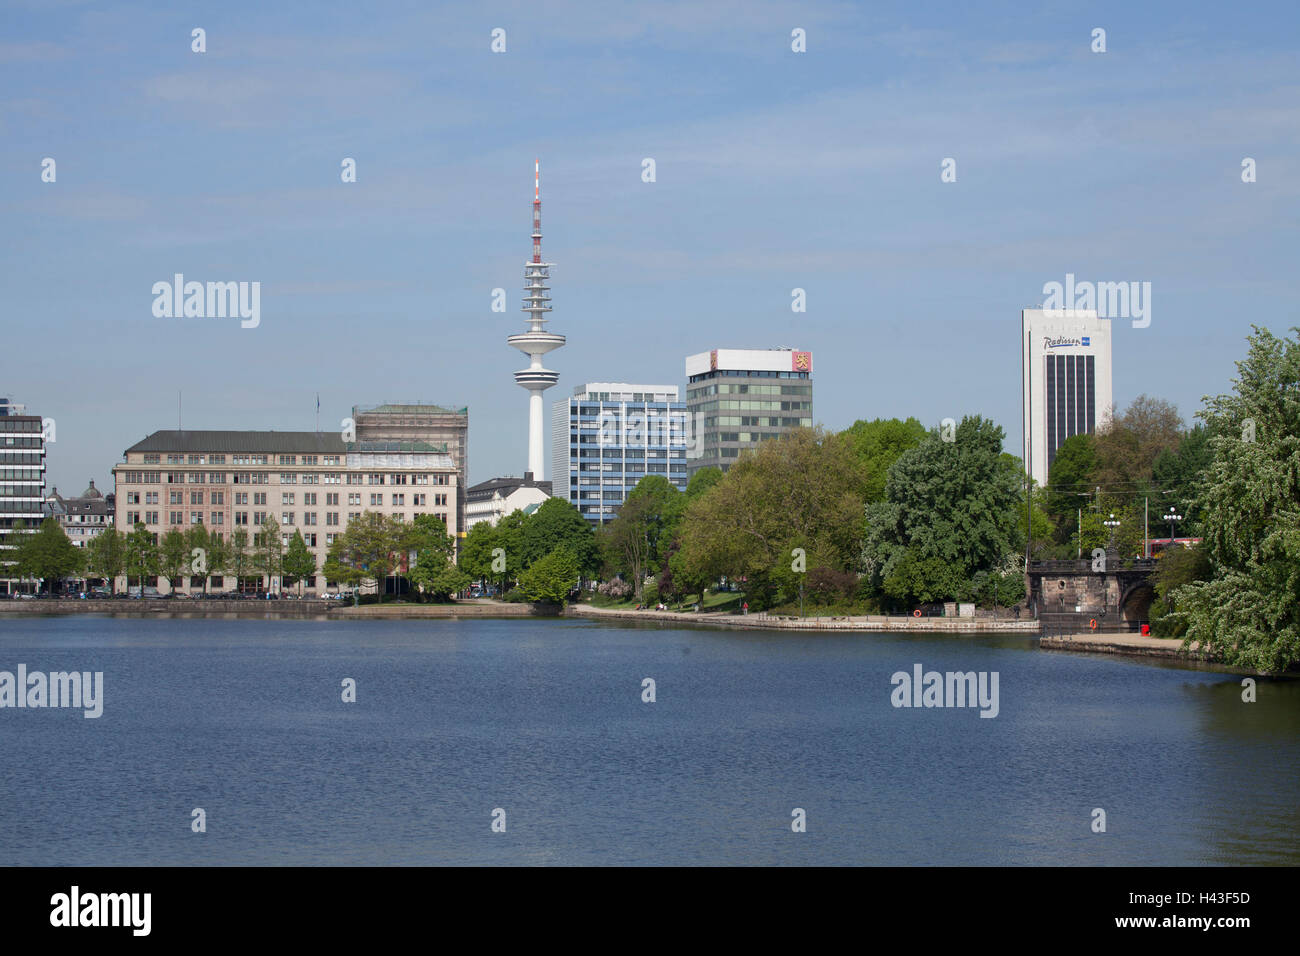 Inner Alster Lake with television tower and Radisson Blu Hotel, Hamburg, Germany - Stock Image